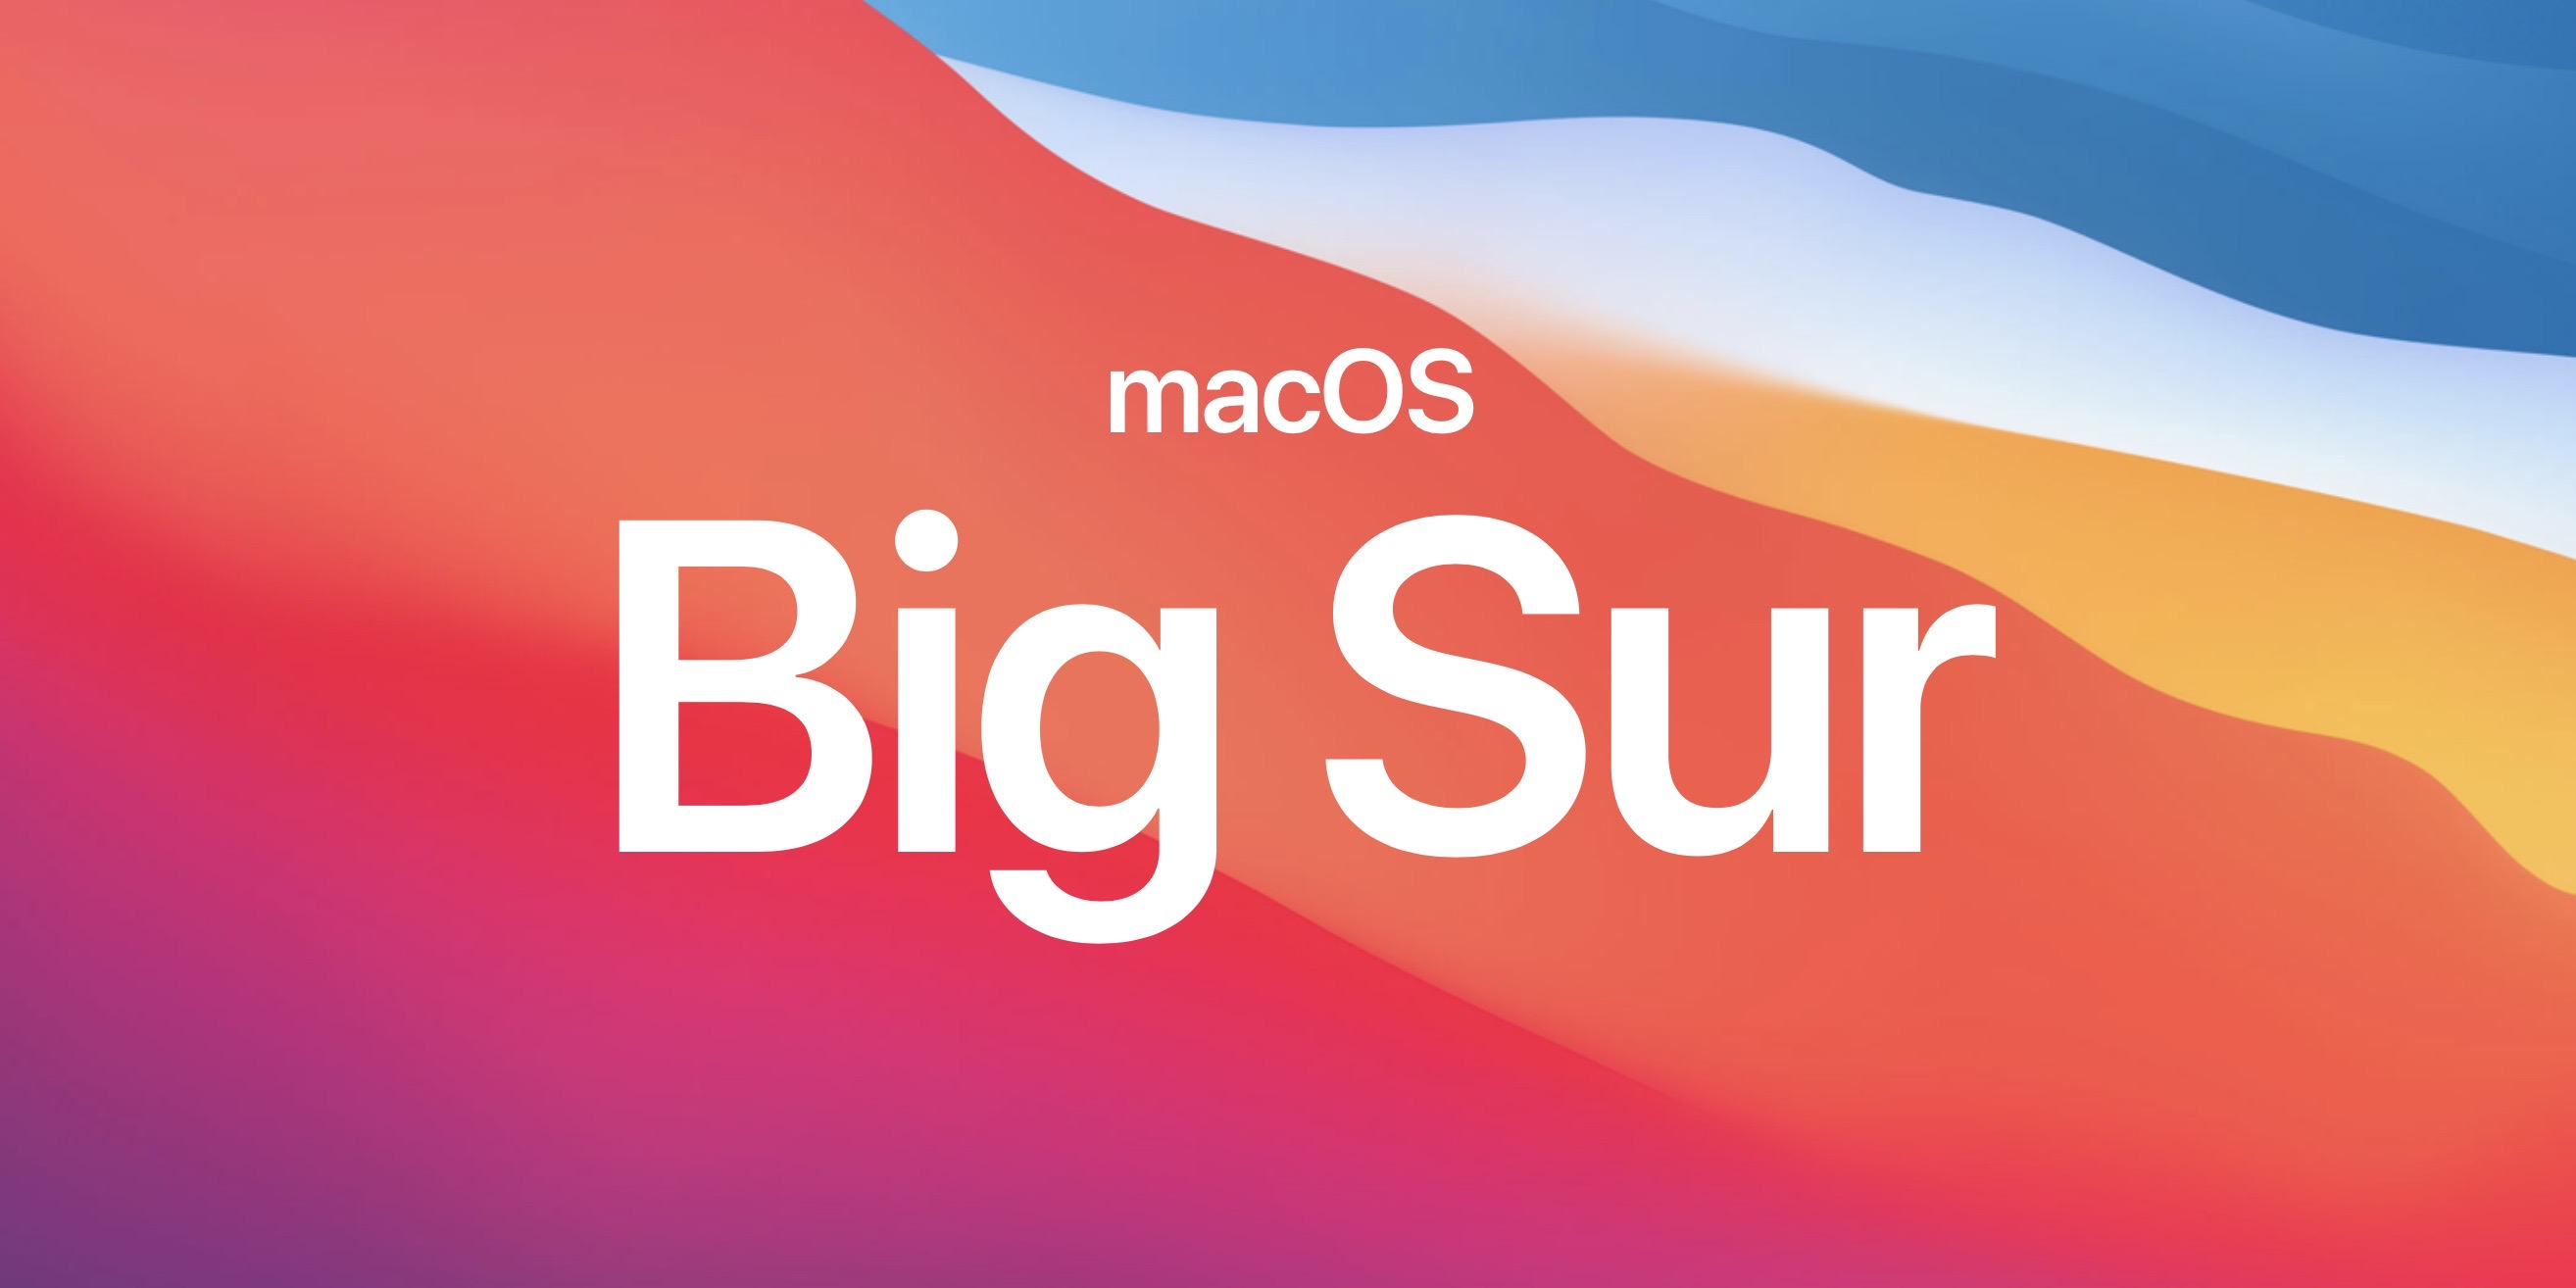 photo of How to install the macOS Big Sur beta image